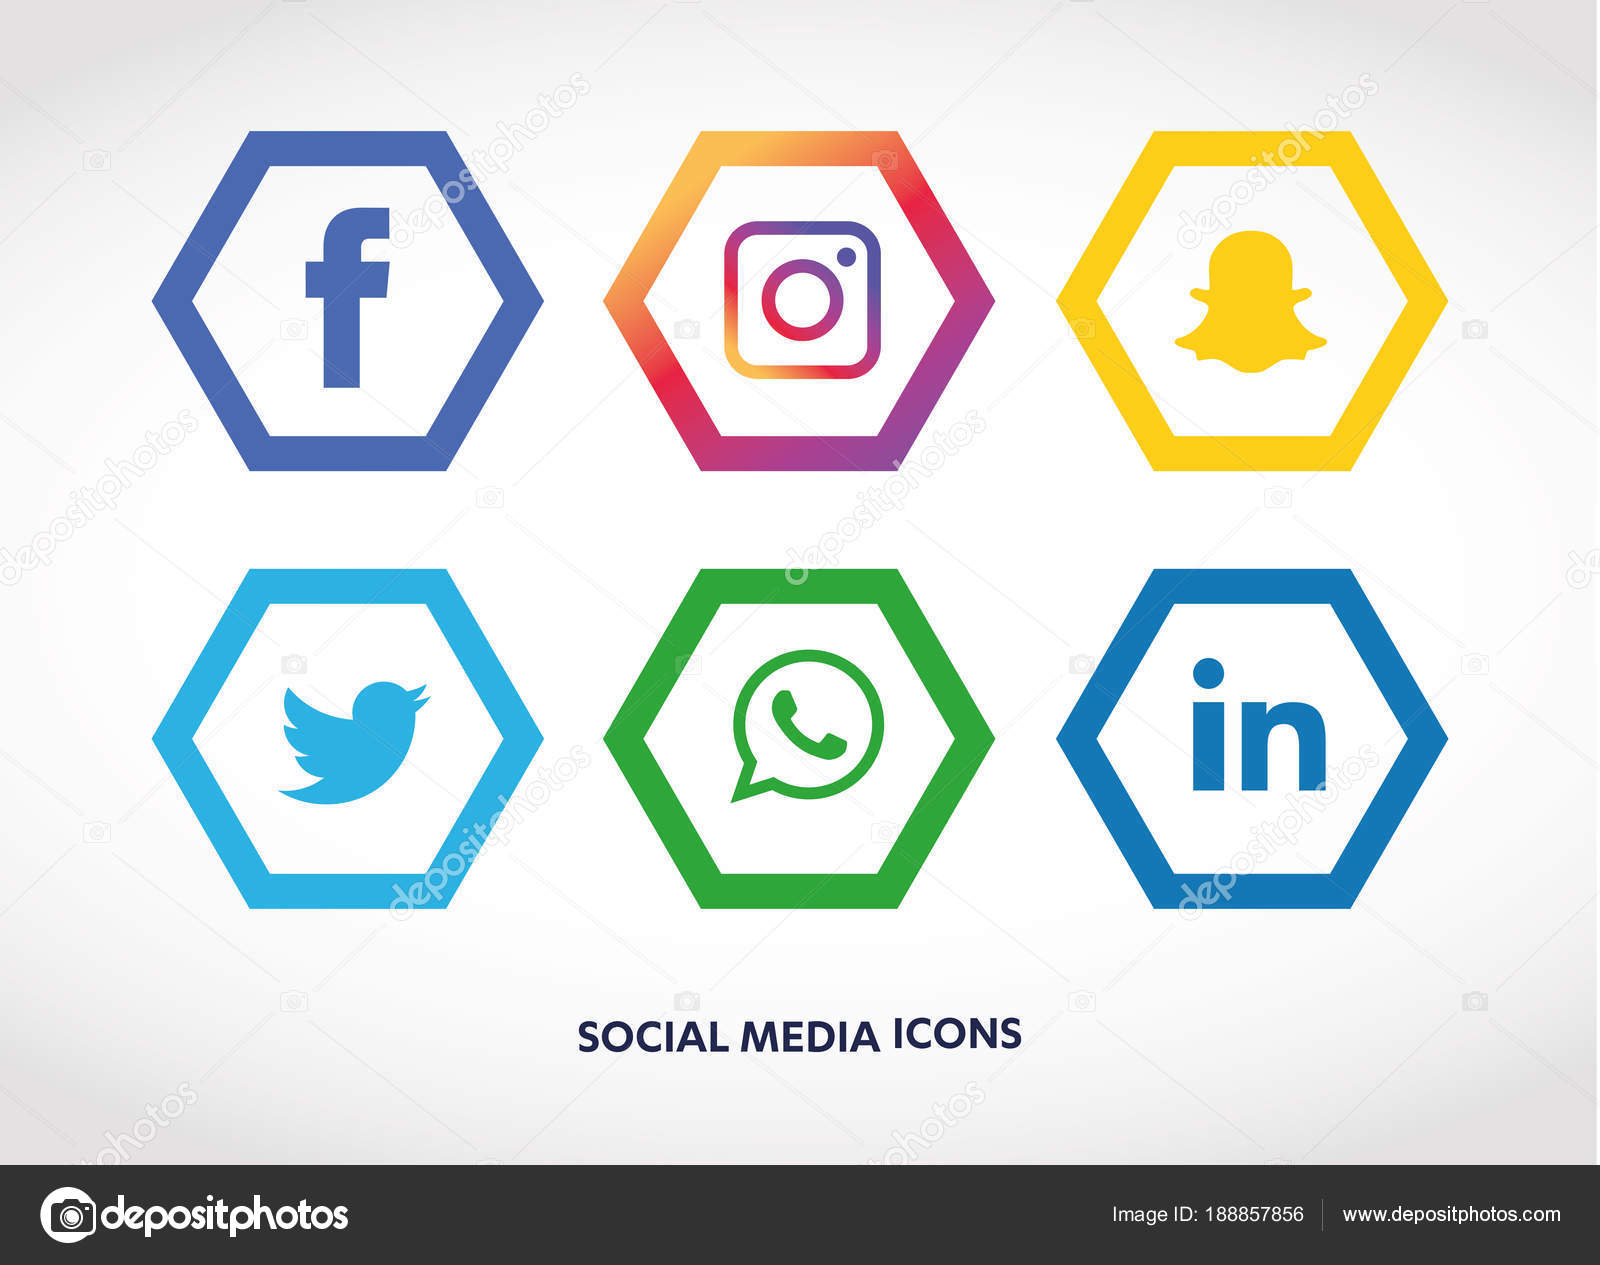 Social Media Icons Set Facebook Instagram Whatsapp